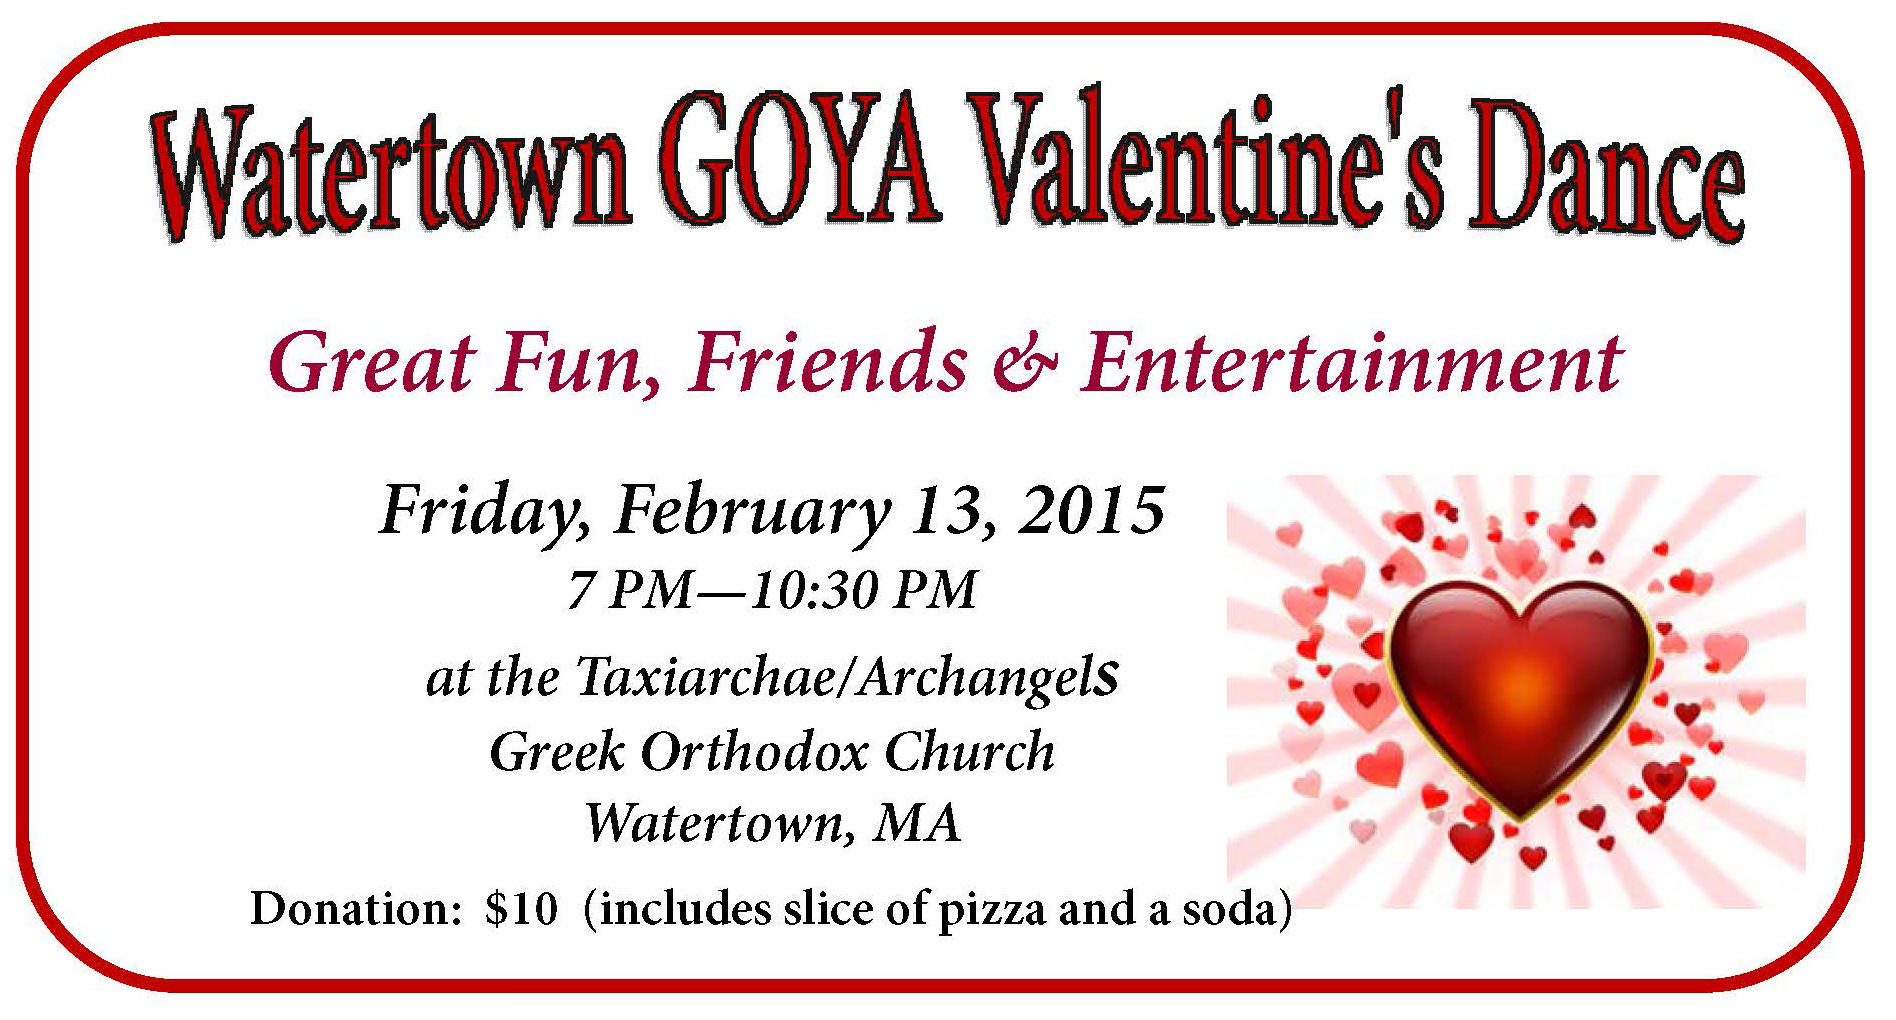 ... GOYA Valentine's Dance at Taxiarchae/Aarchangels Greek Church